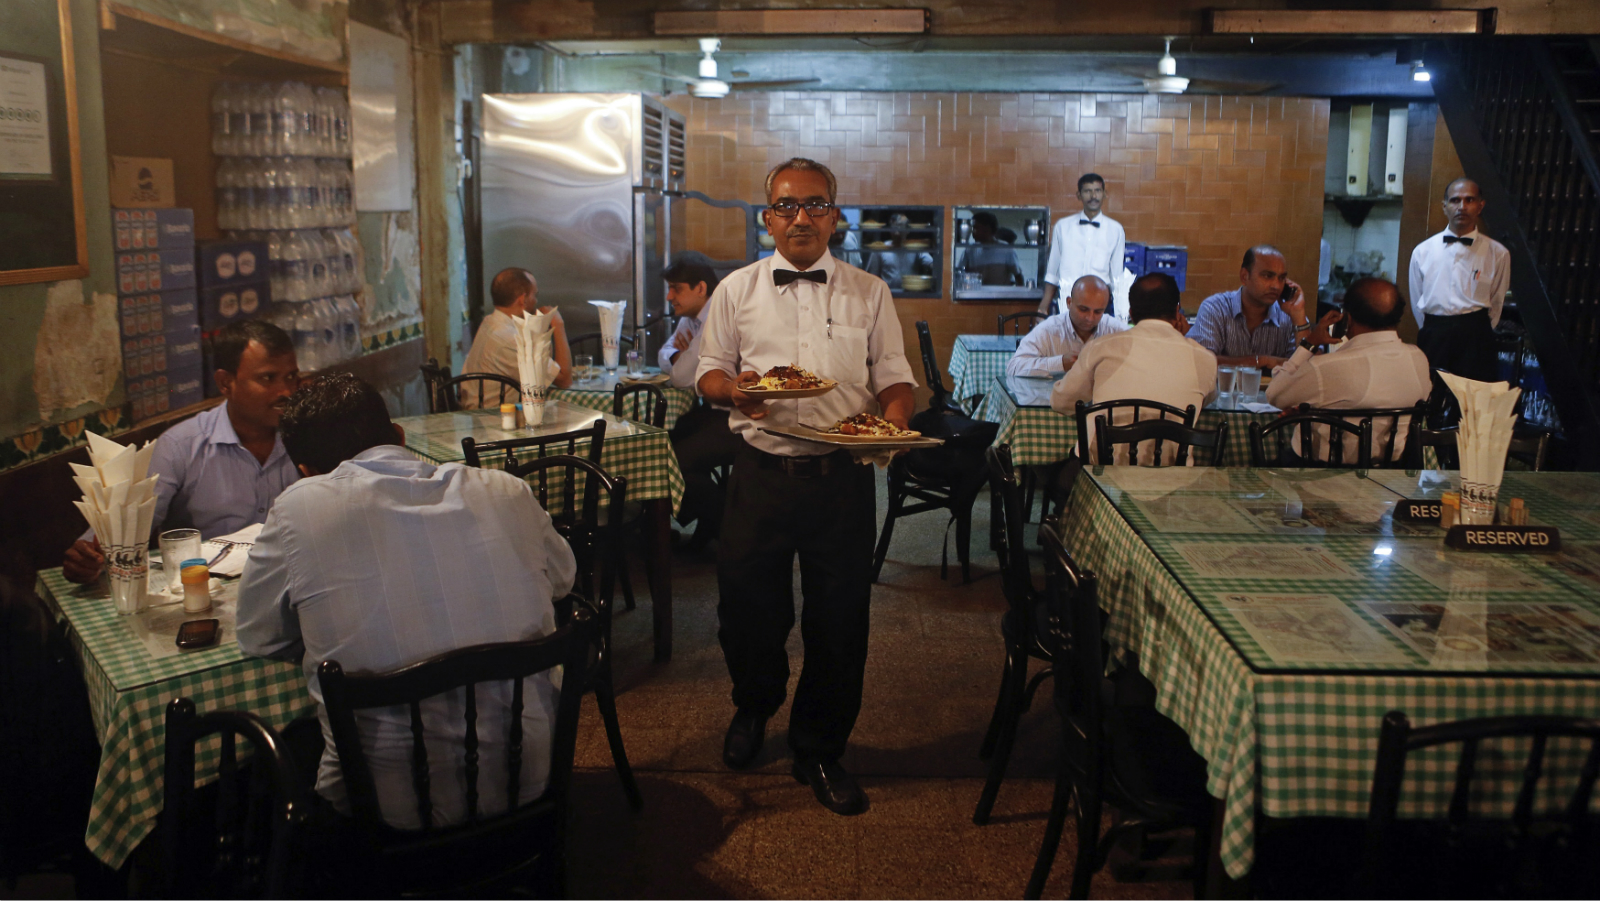 A waiter carries plates of food for customers at the Britannia and Co. restaurant in Mumbai September 19, 2013. The aroma of frying onions from the Britannia and Co. restaurant might not penetrate the office of Reserve Bank of India (RBI) Governor Raghuram Rajan a block away, but like the eatery's customers, he can't escape the soaring price of the pungent vegetable.